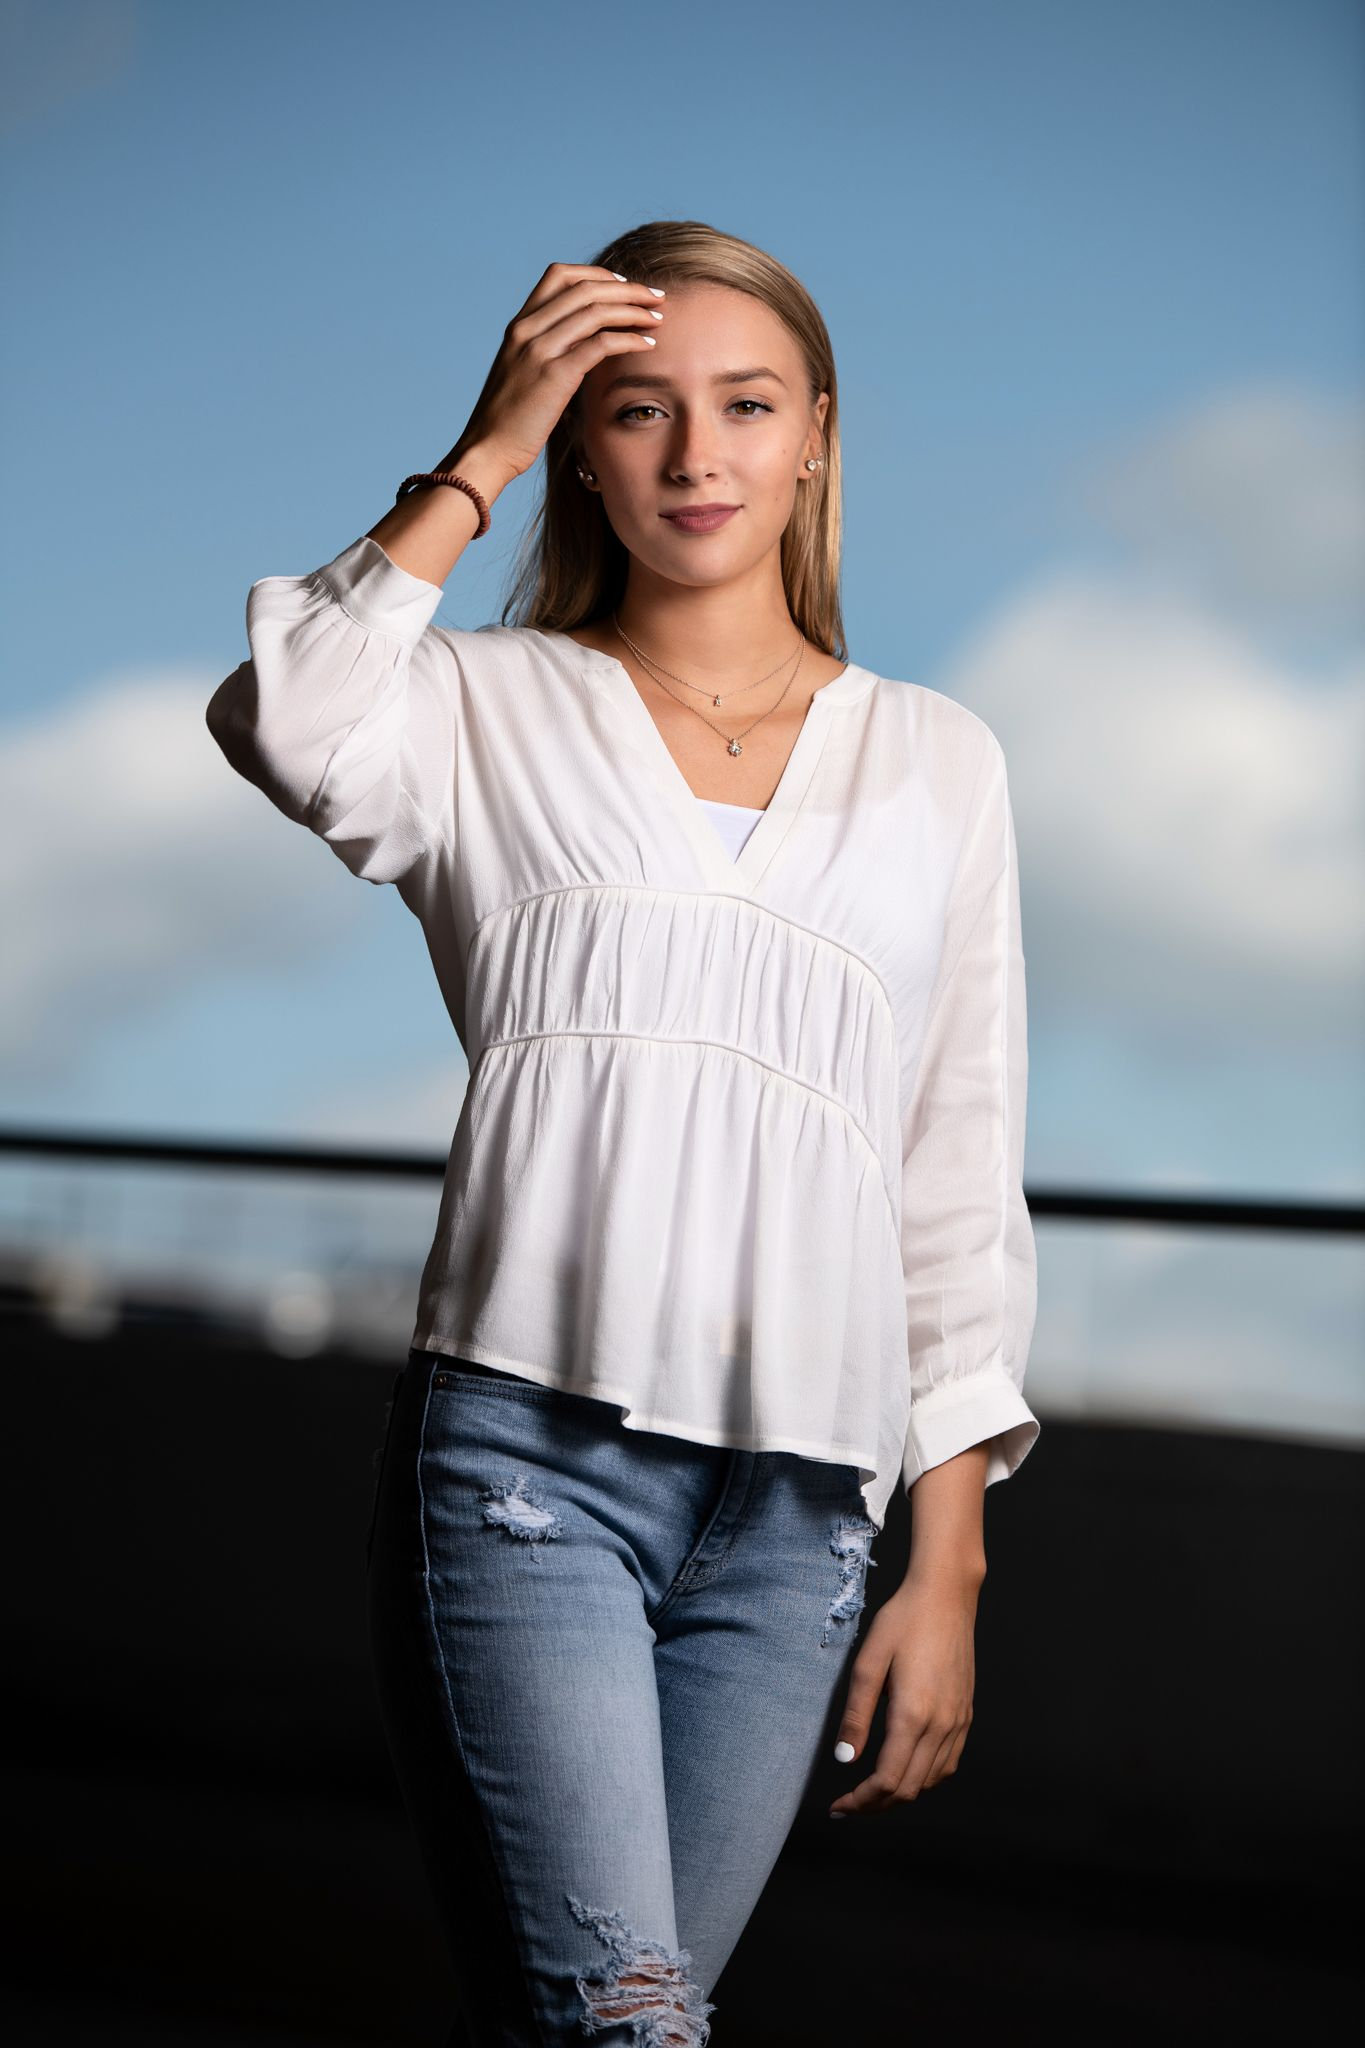 Senior session with a girl in white top and torn blue jeans atop a parking garage, urban setting